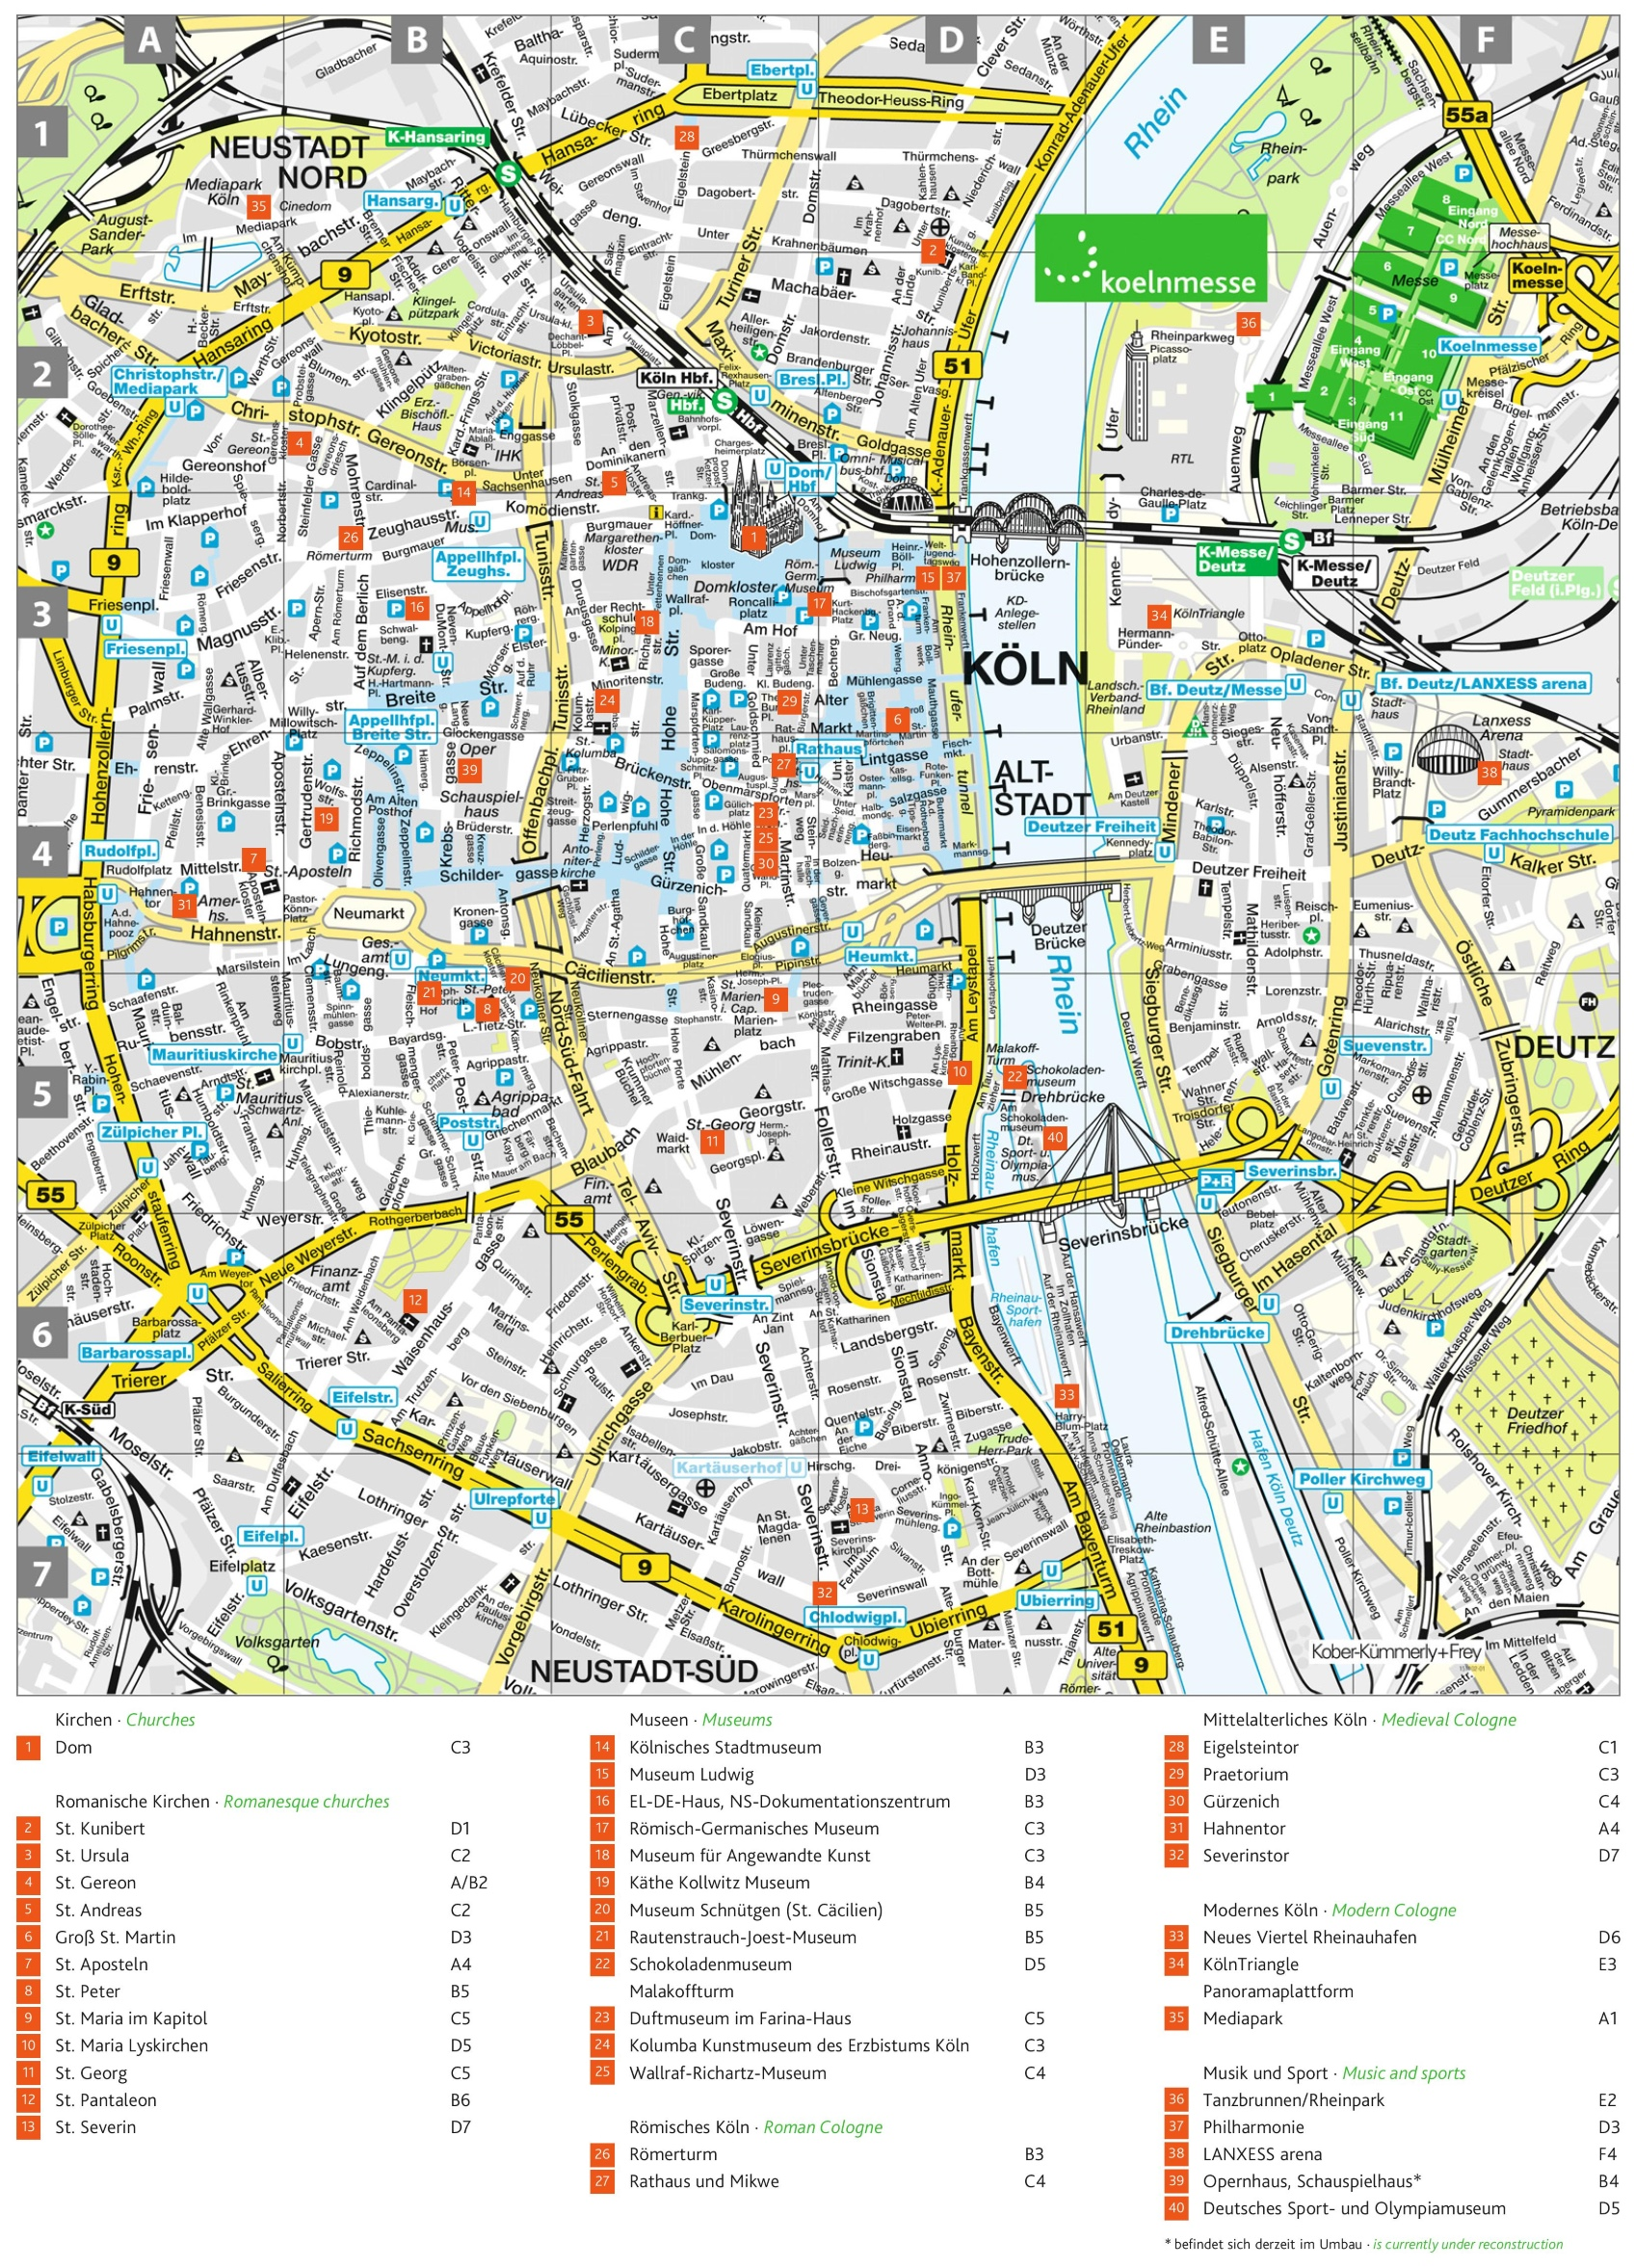 Cologne tourist attractions map – Germany Tourist Attractions Map